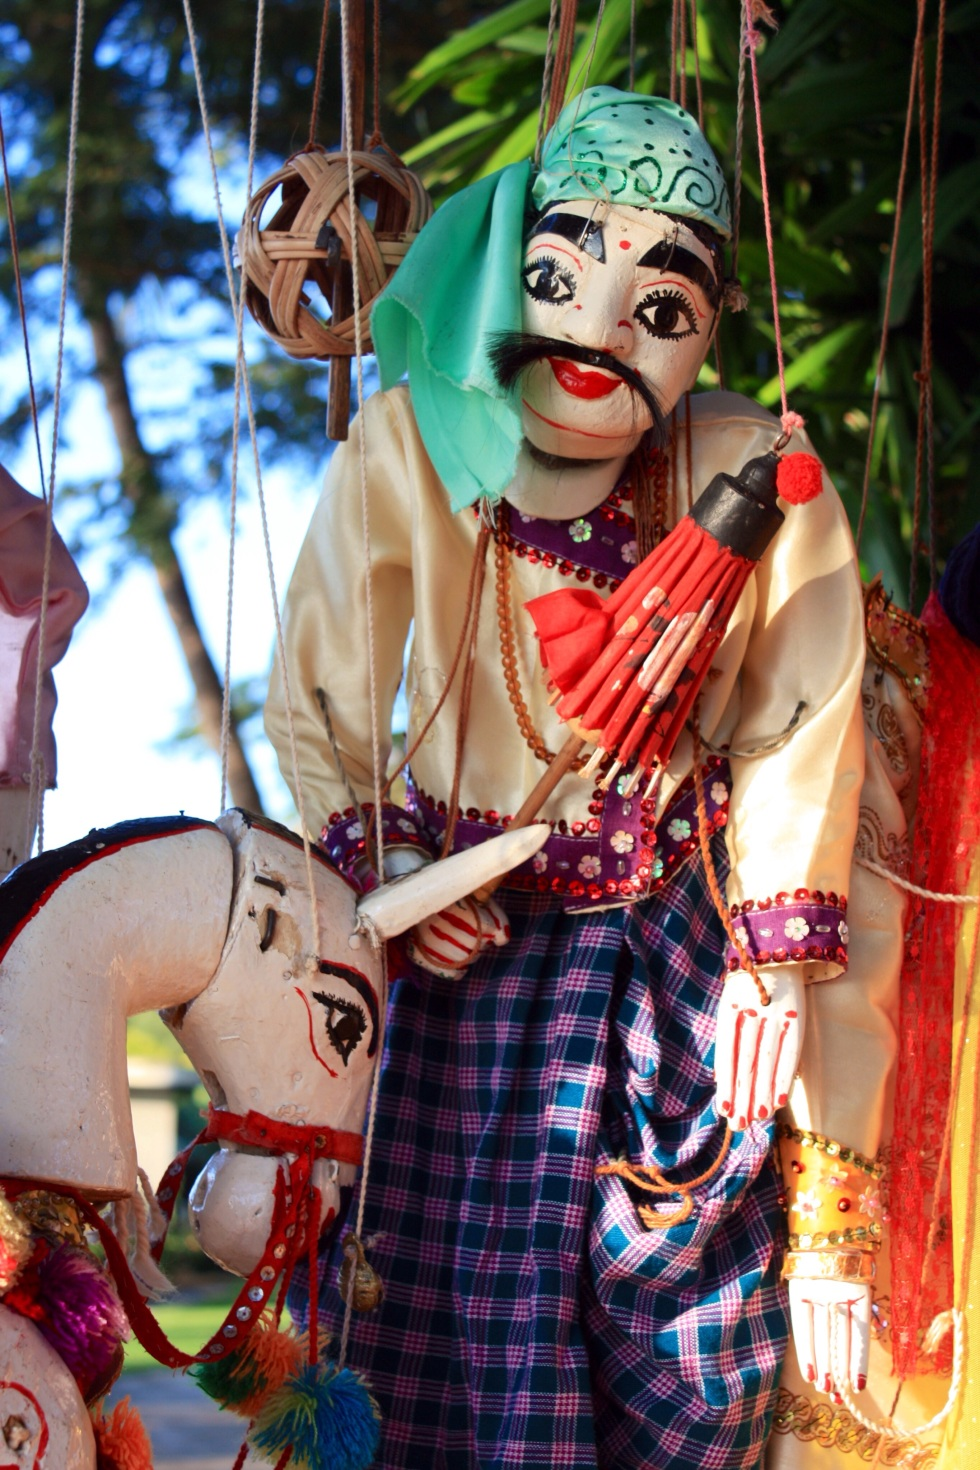 Traditional Burmese puppet, Bagan, Burma, October 2012